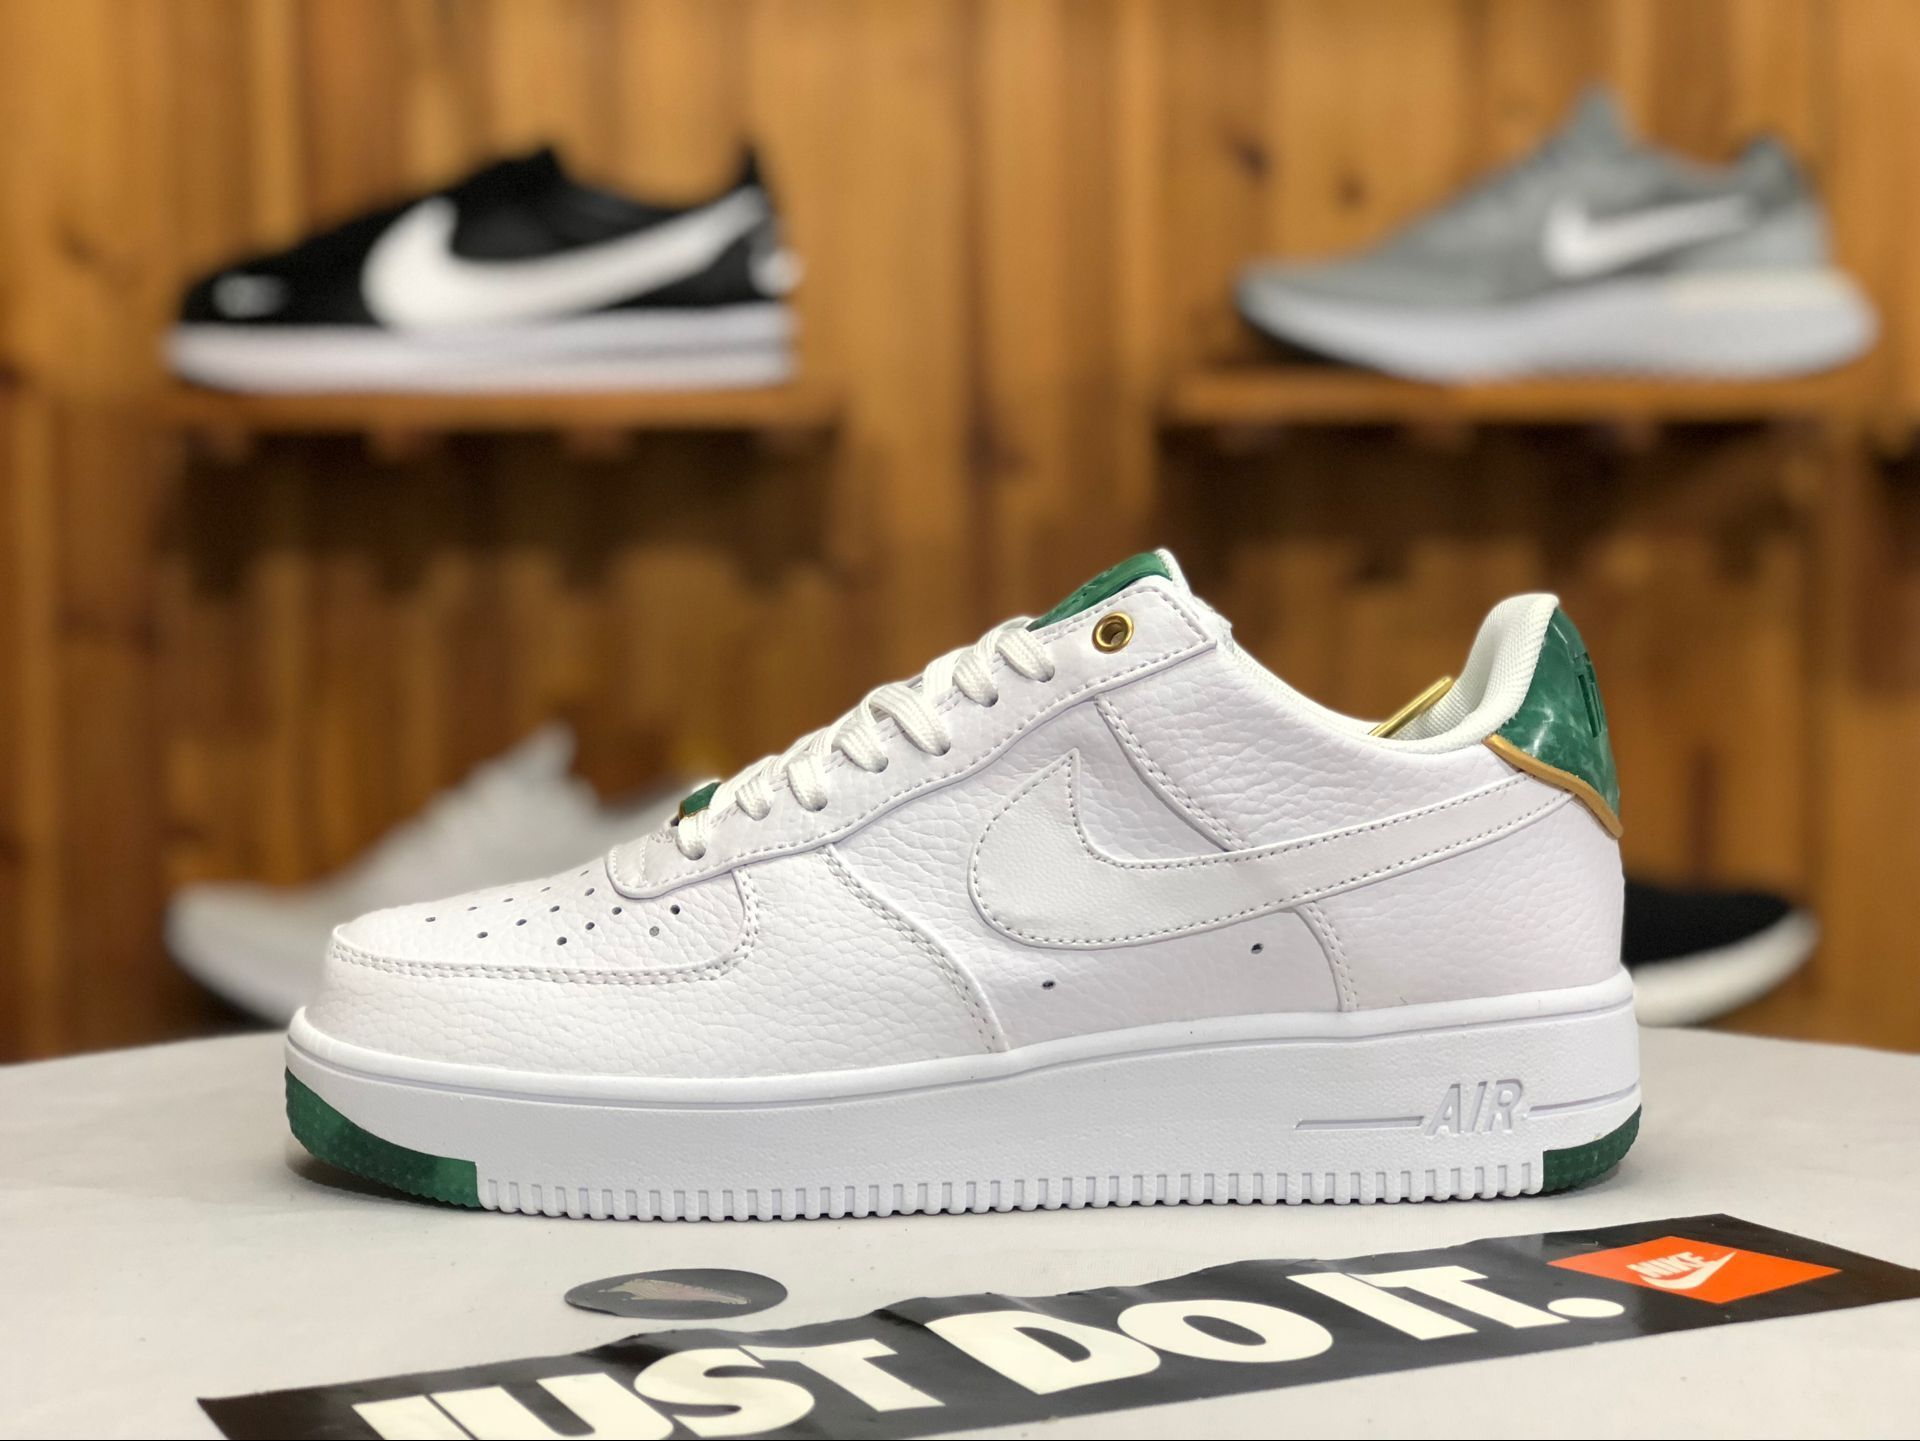 Where to buy Nike Air Force 1 Ultra Jade White Green 919521